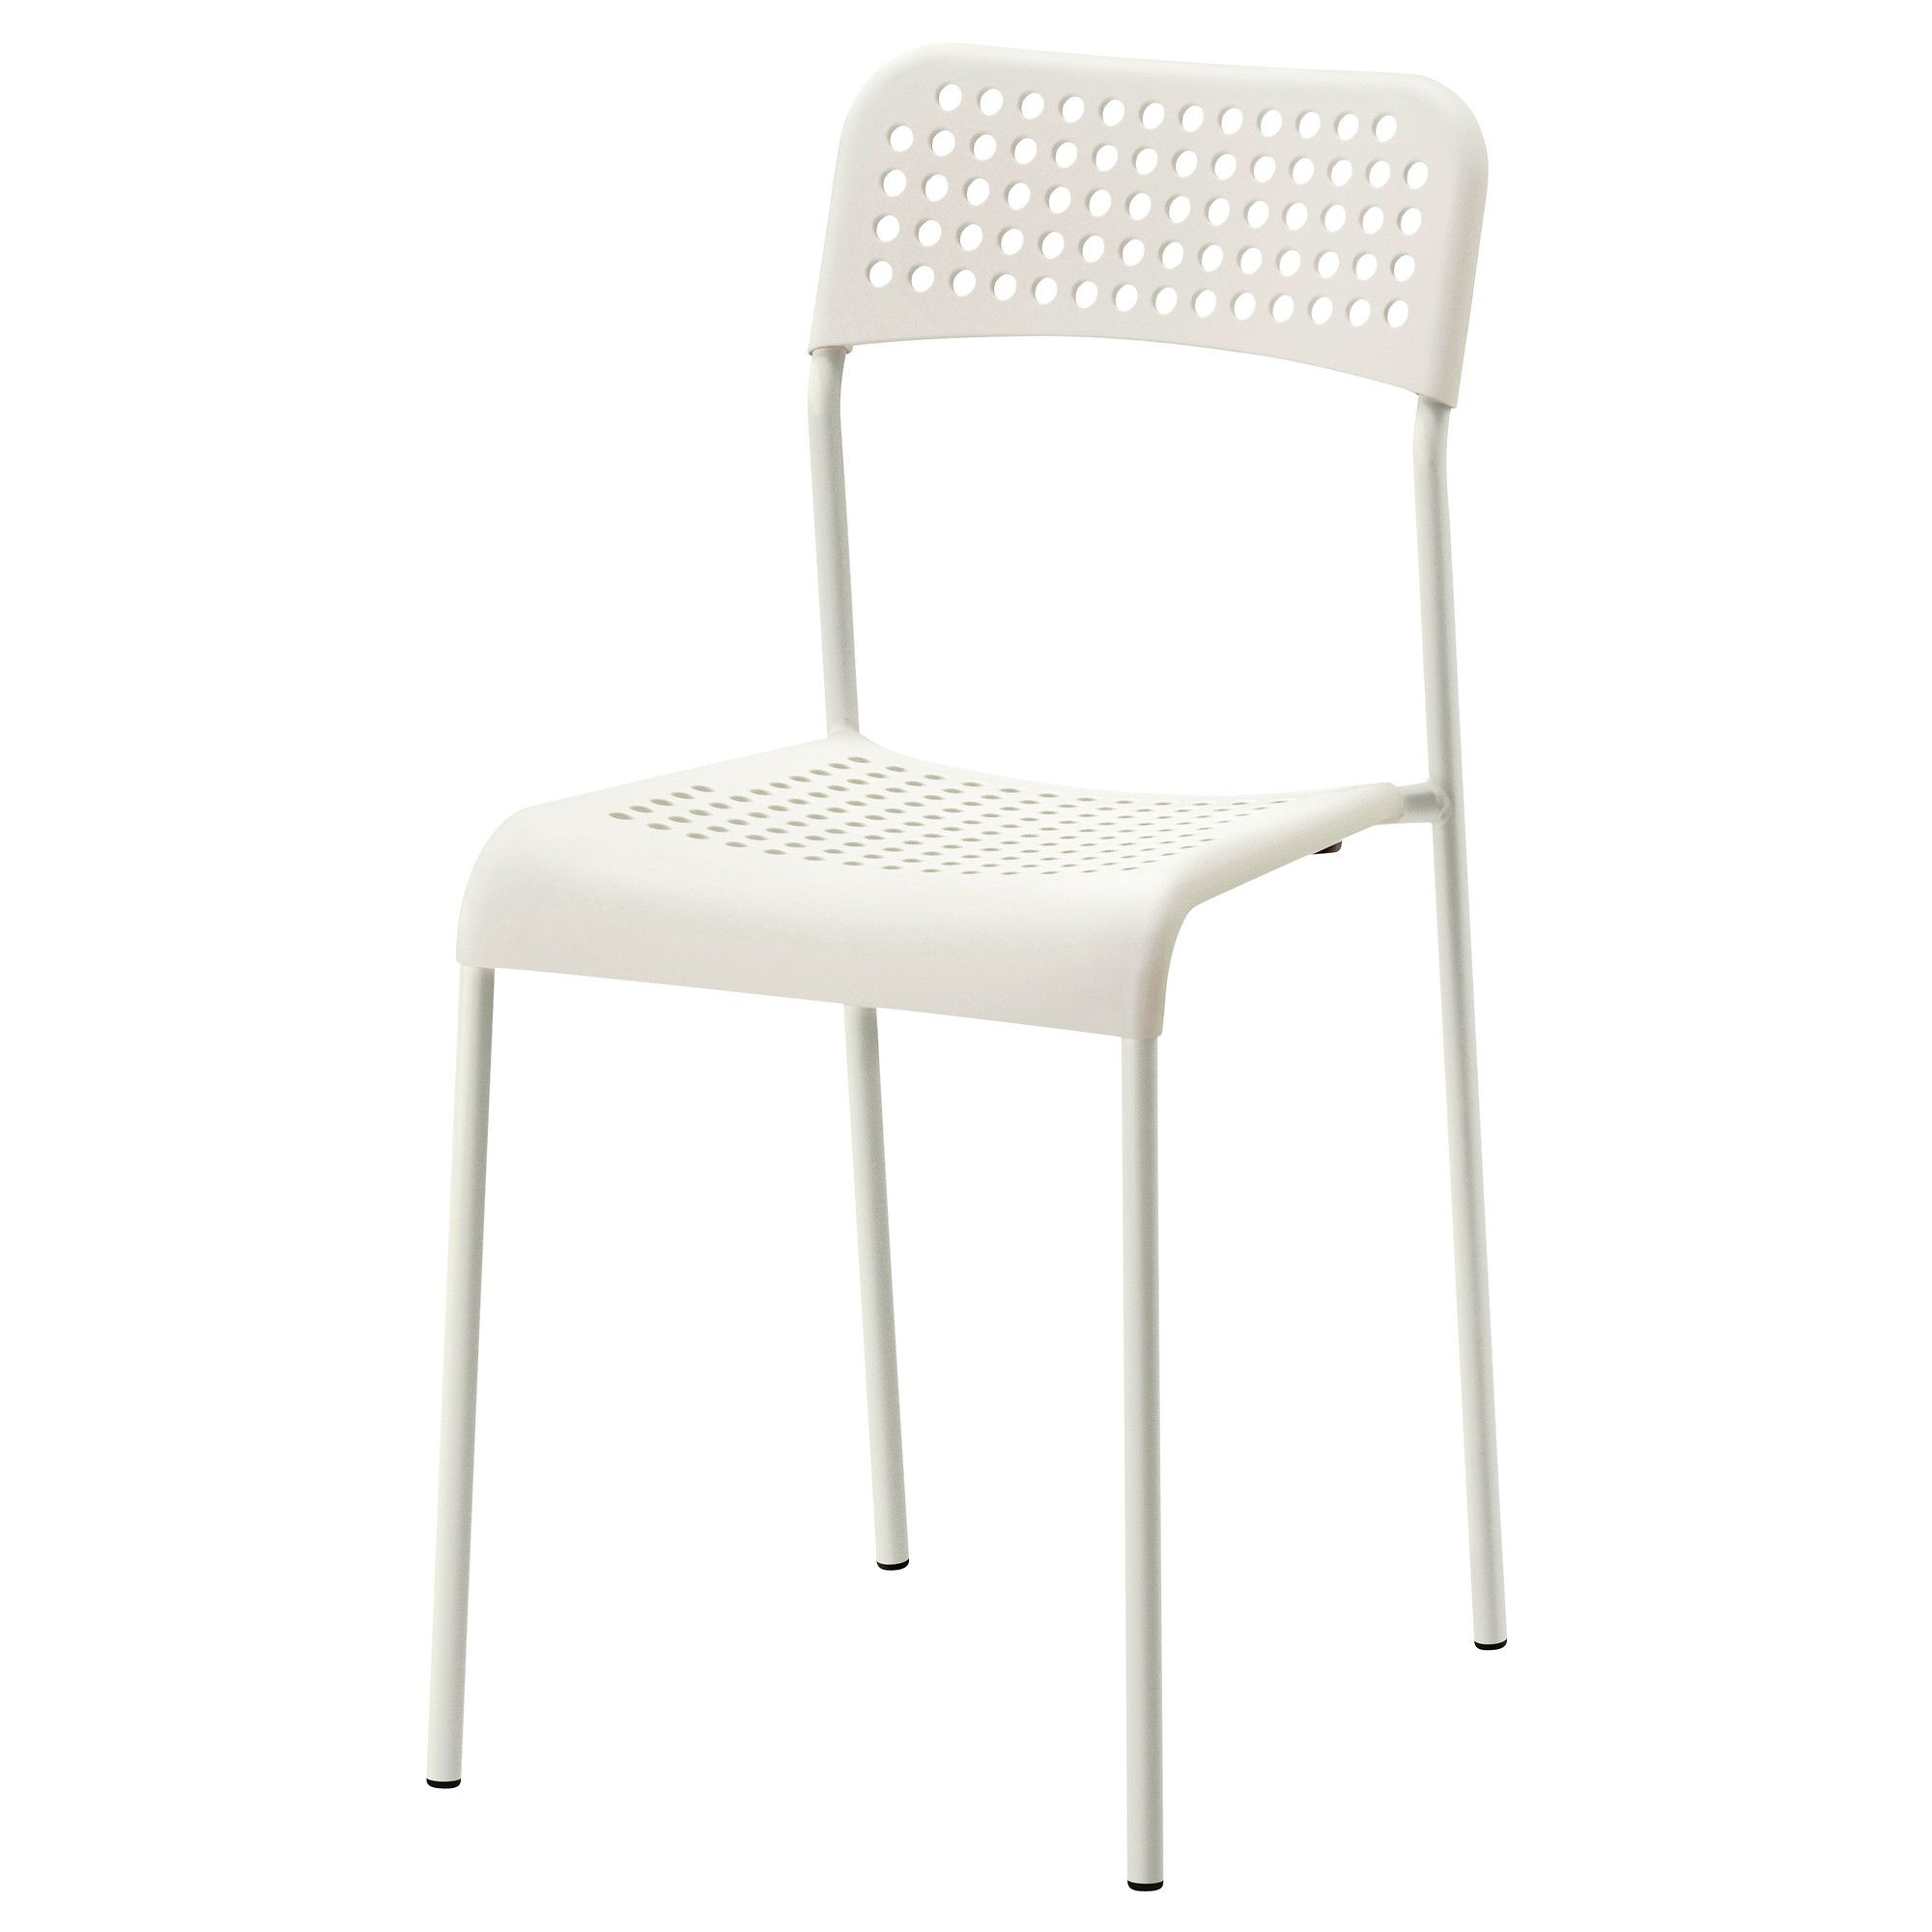 Adde Chair White Ikea Dining Chair Dining Chairs Ikea Chair